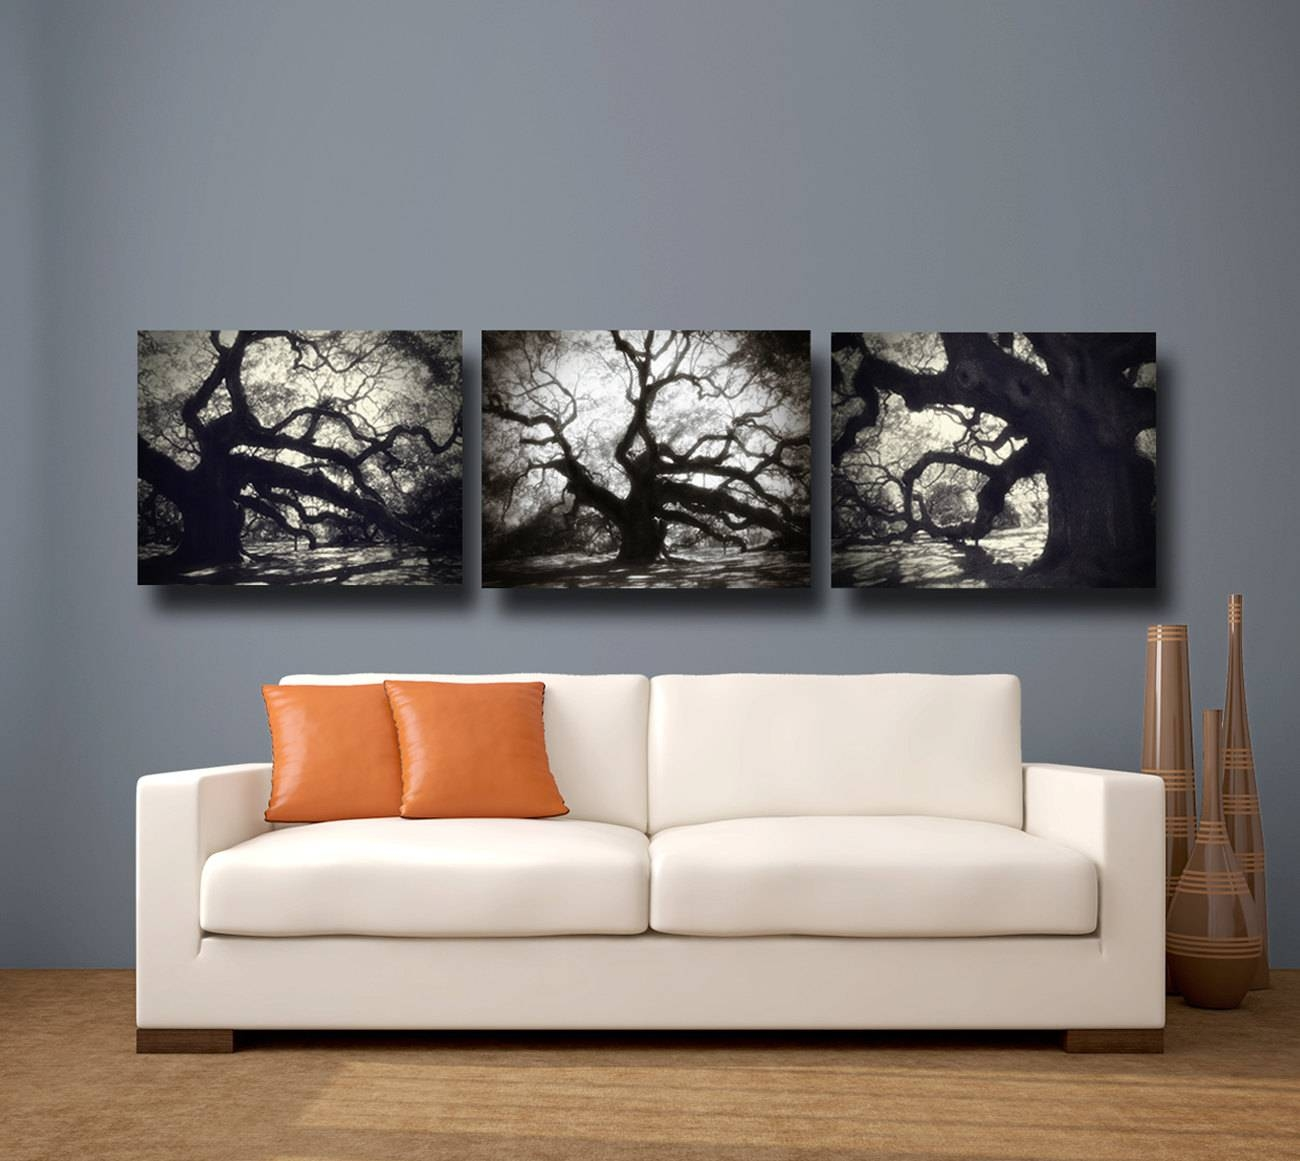 Wall Art Designs: Wall Canvas Art On Demand Free Printable Cheap Throughout Most Up To Date 3 Piece Wall Art Sets (View 23 of 25)